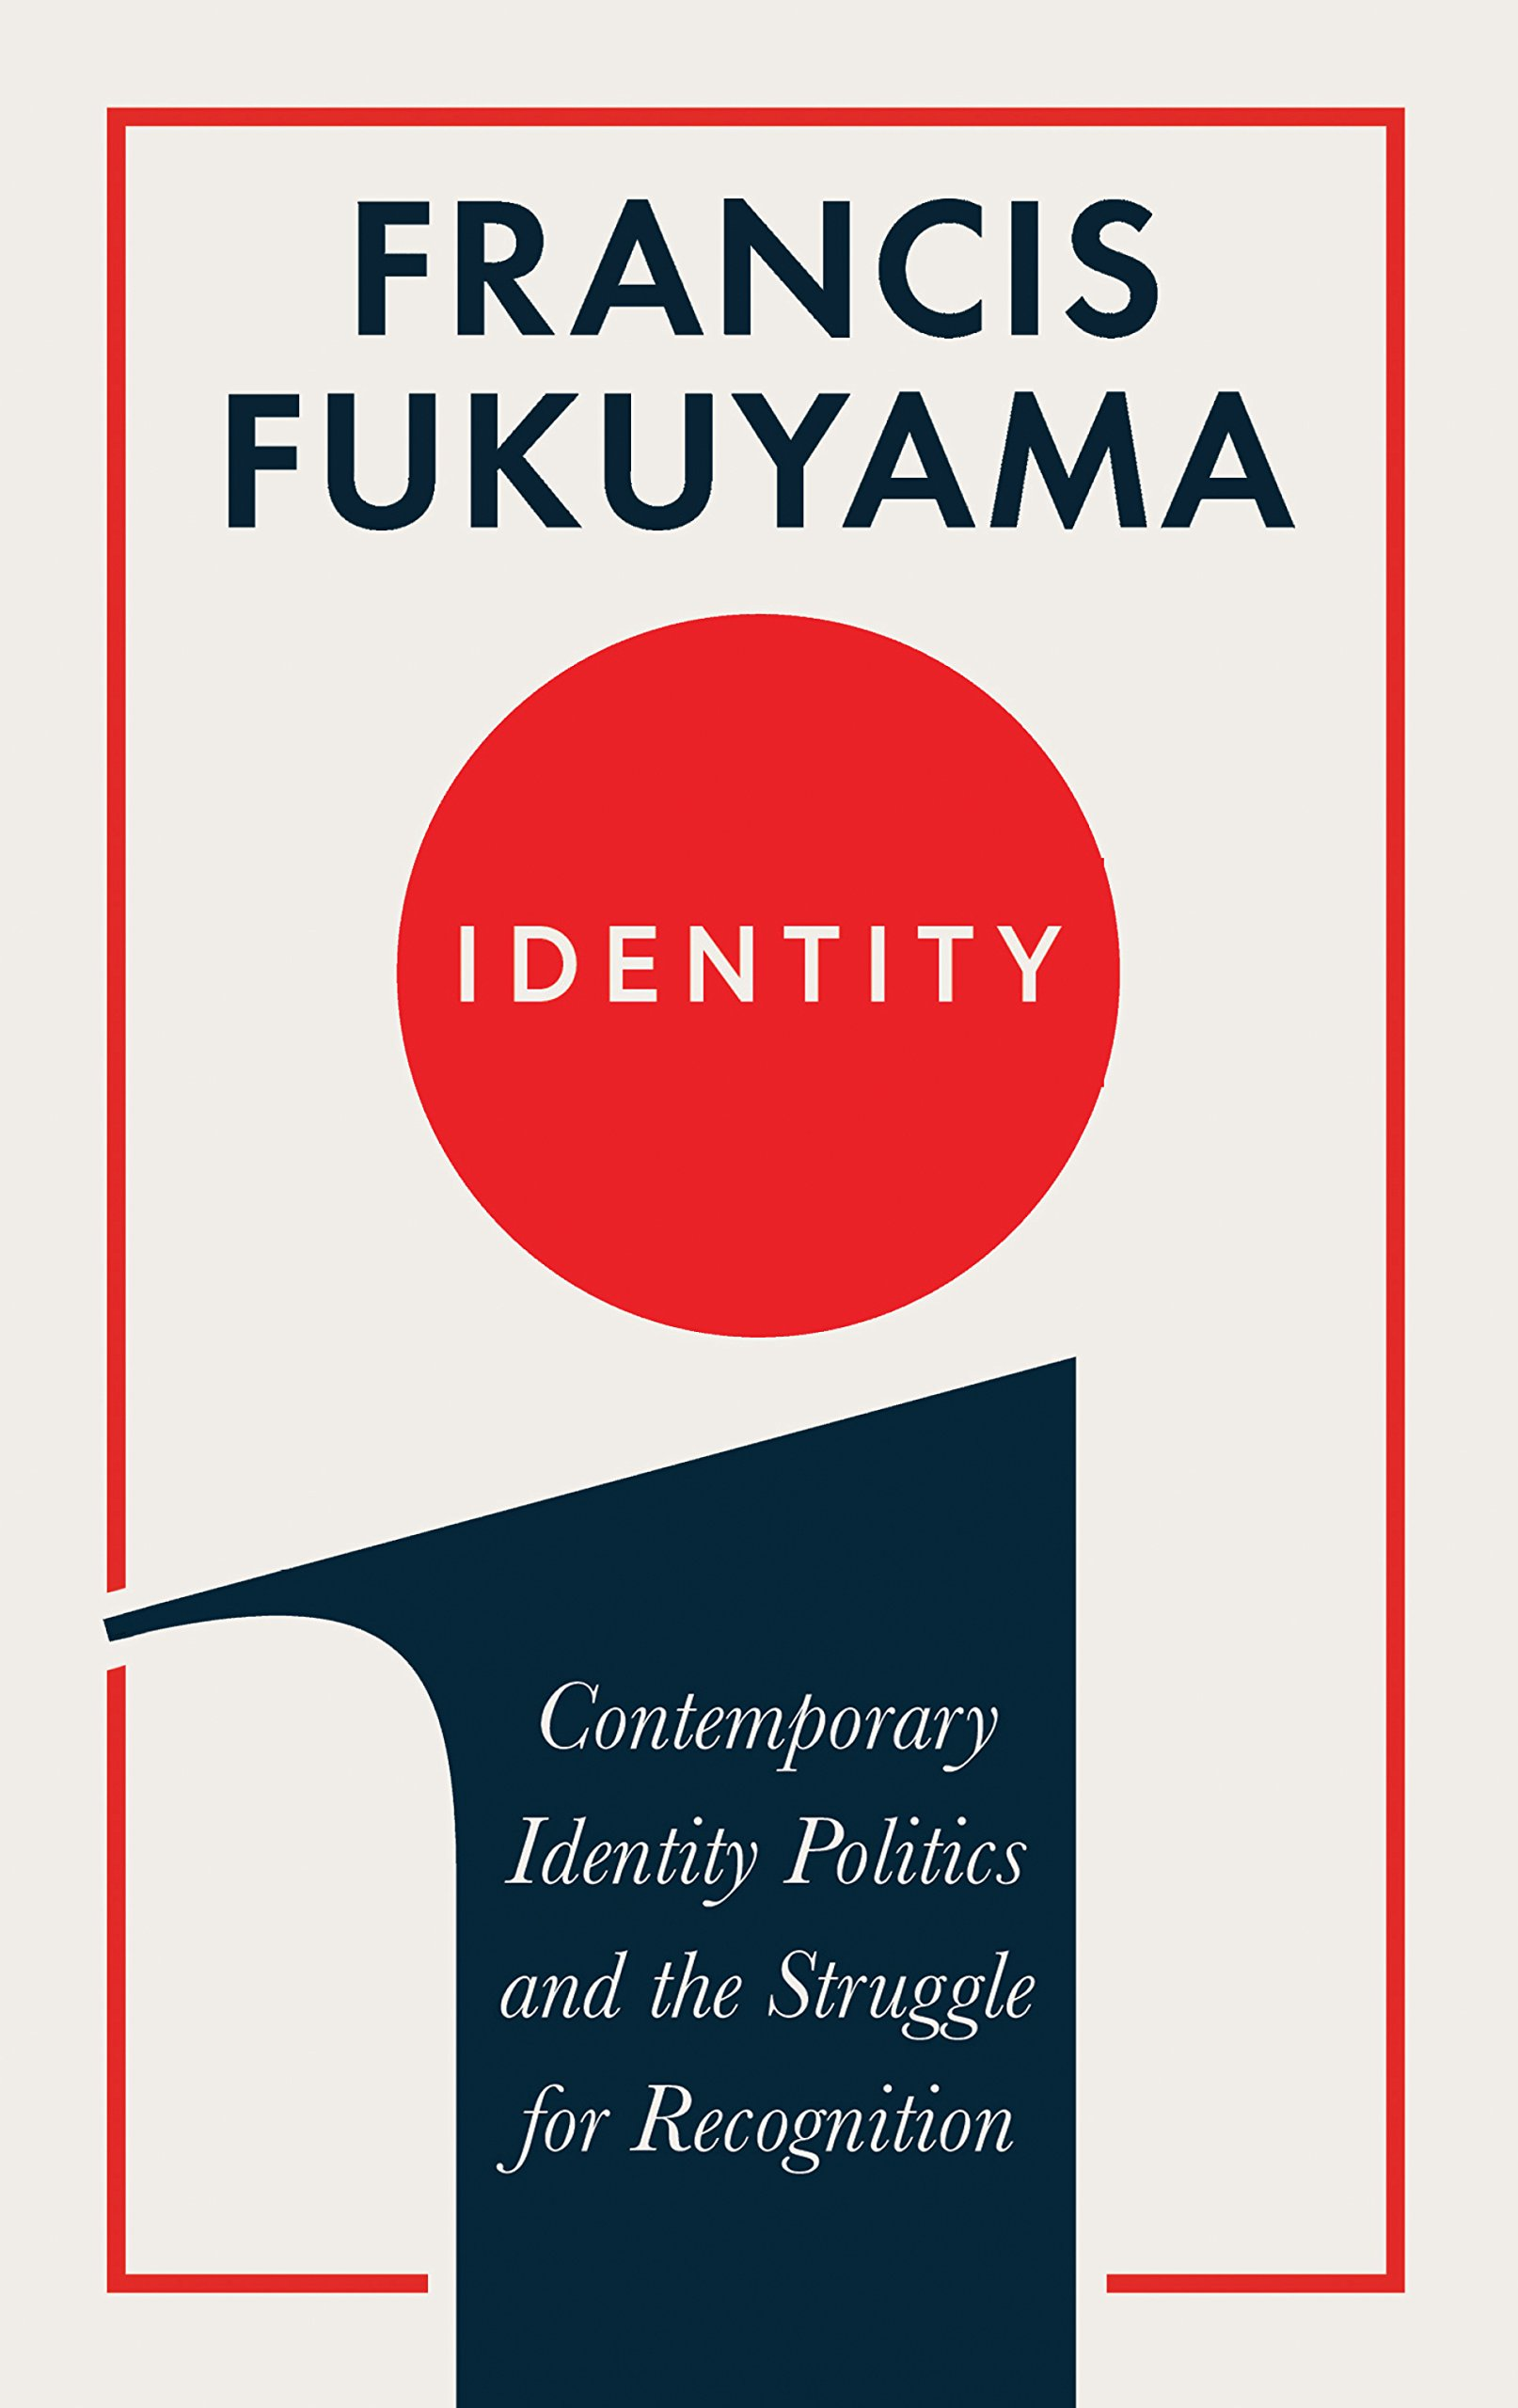 Image result for Identity: Contemporary Identity Politics and the Struggle for Recognition by Francis Fukuyama